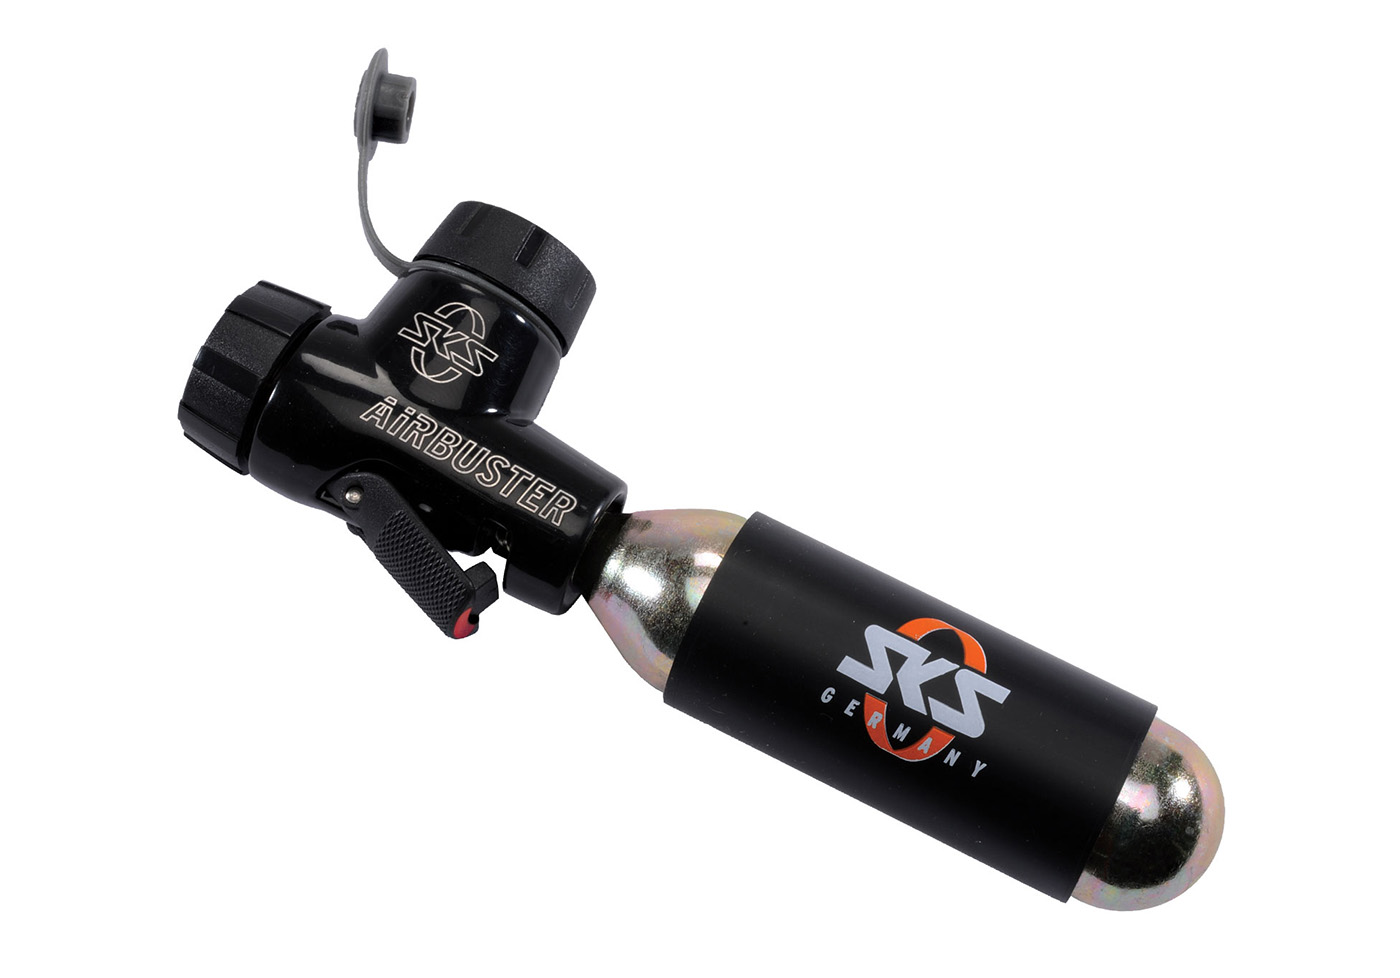 New SKS Airbuster CO2 Inflator